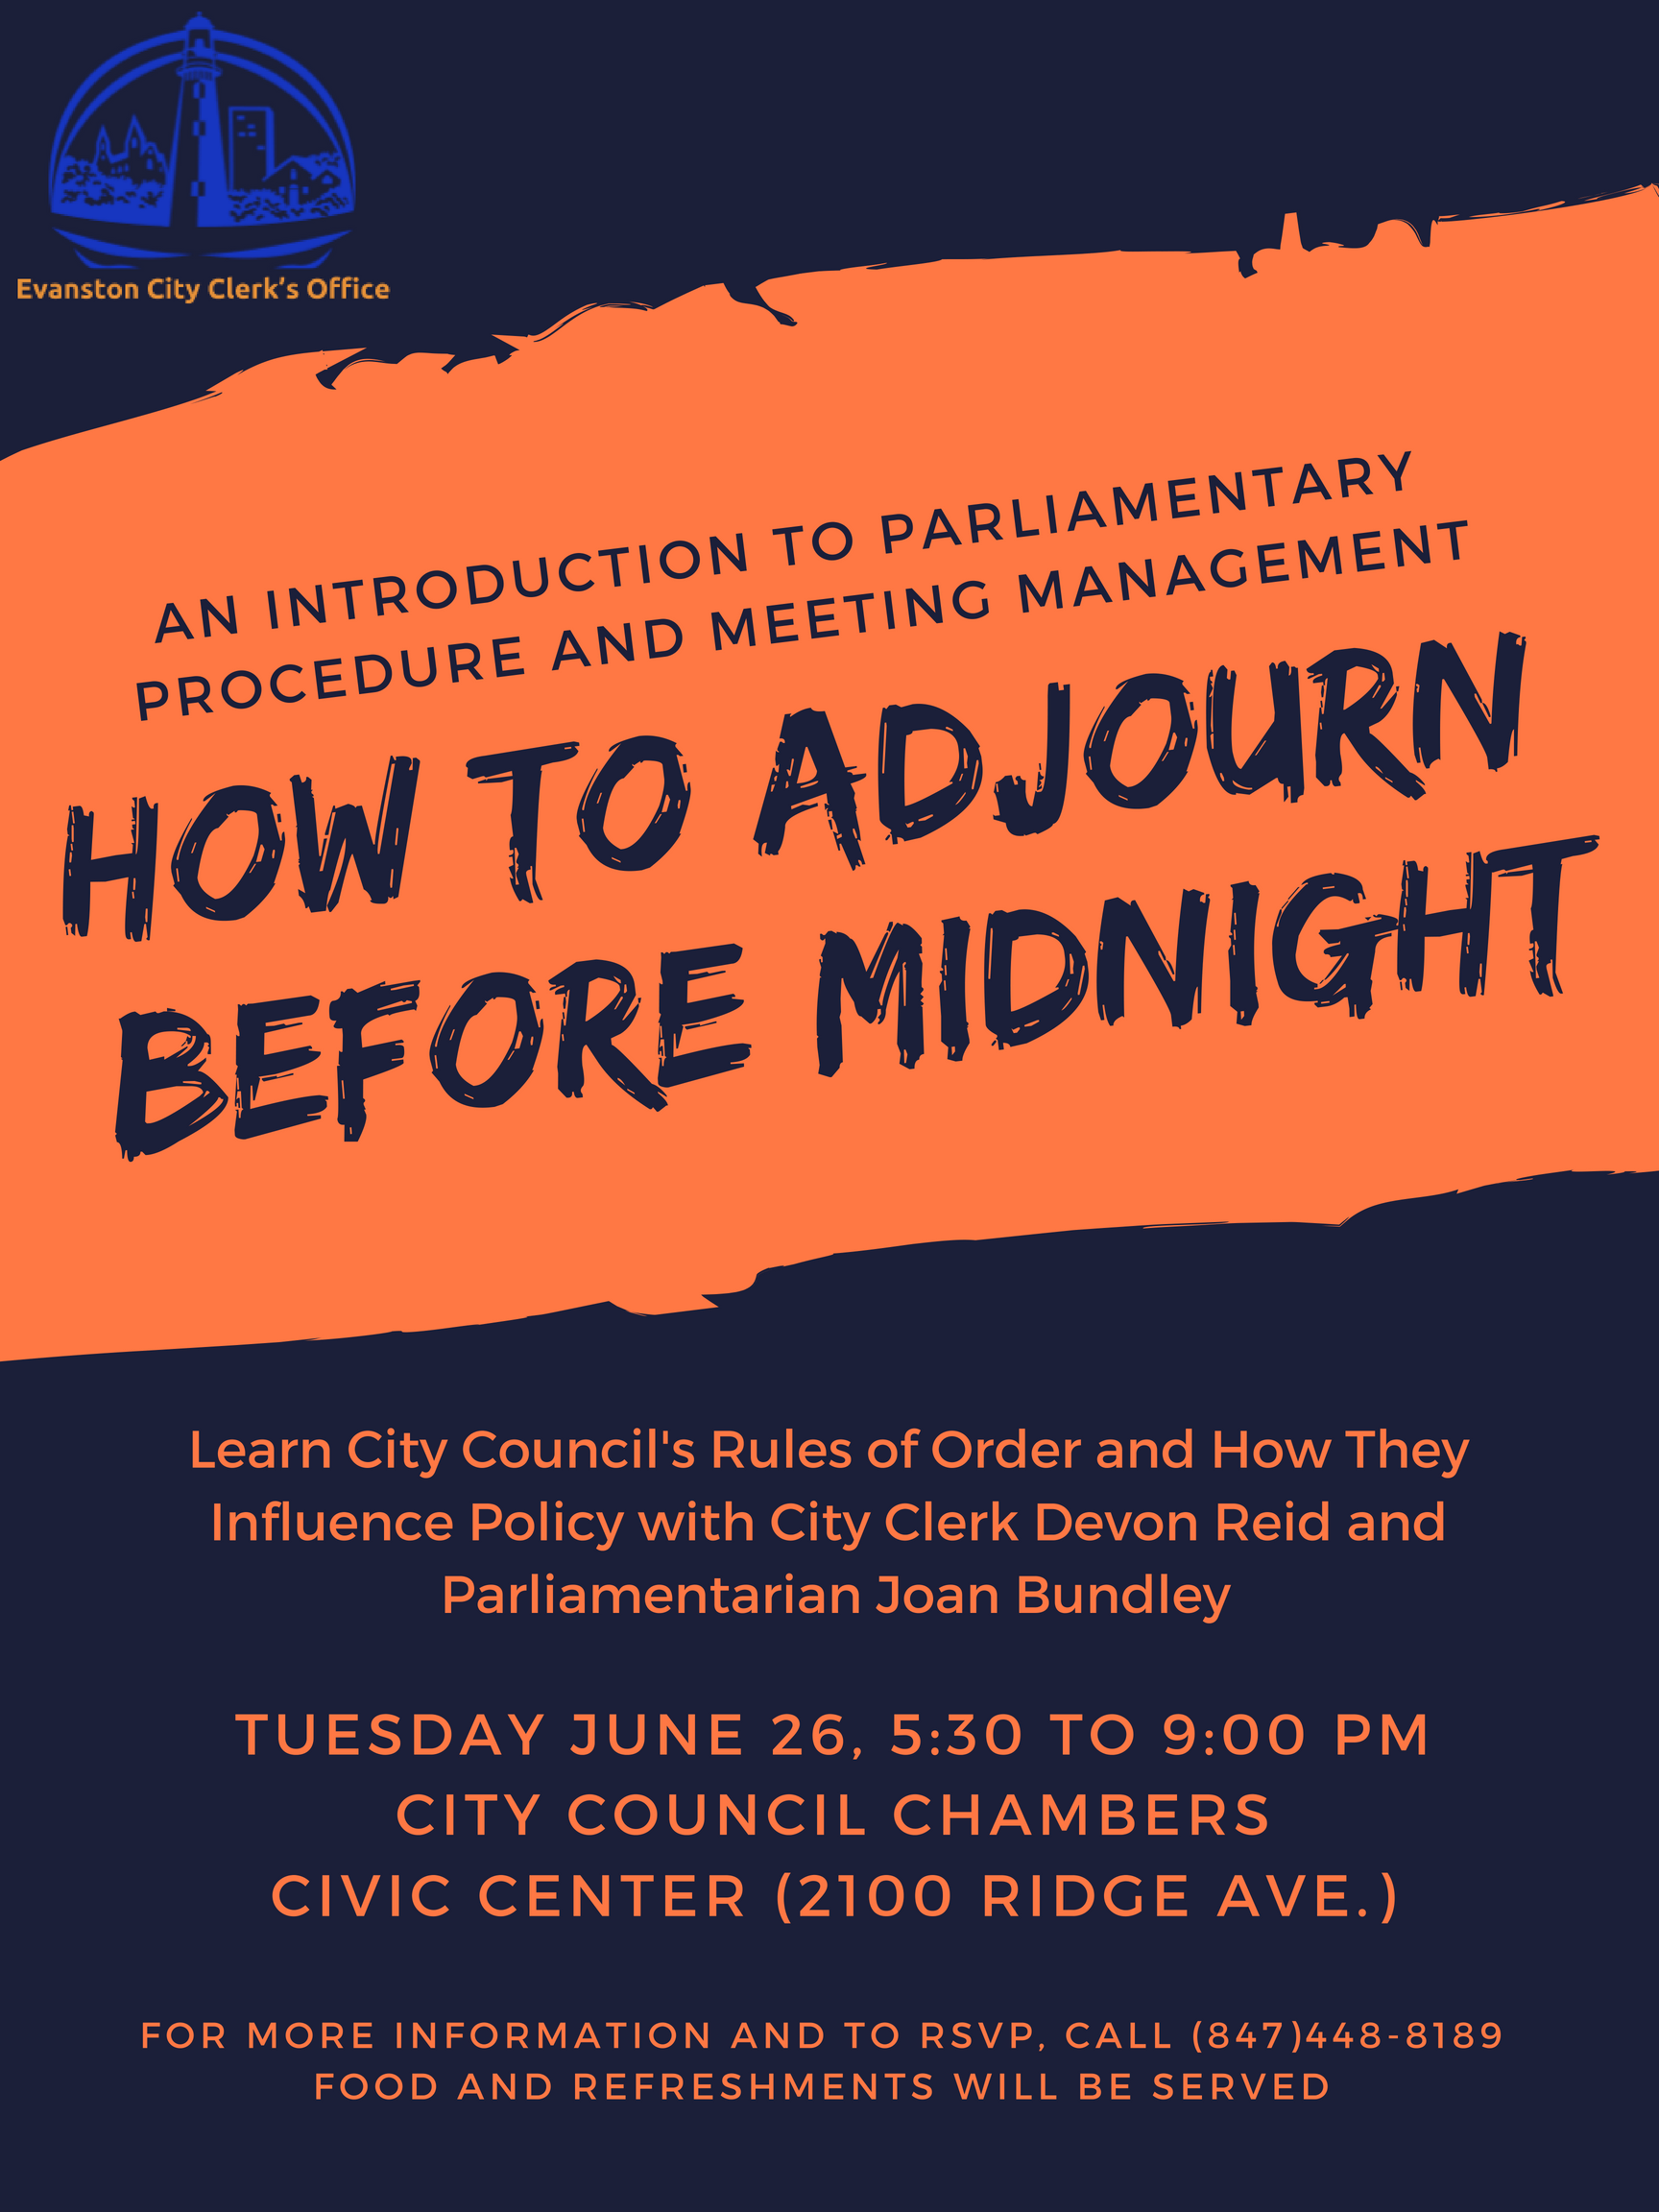 how to adjourn before midnight events city of evanston